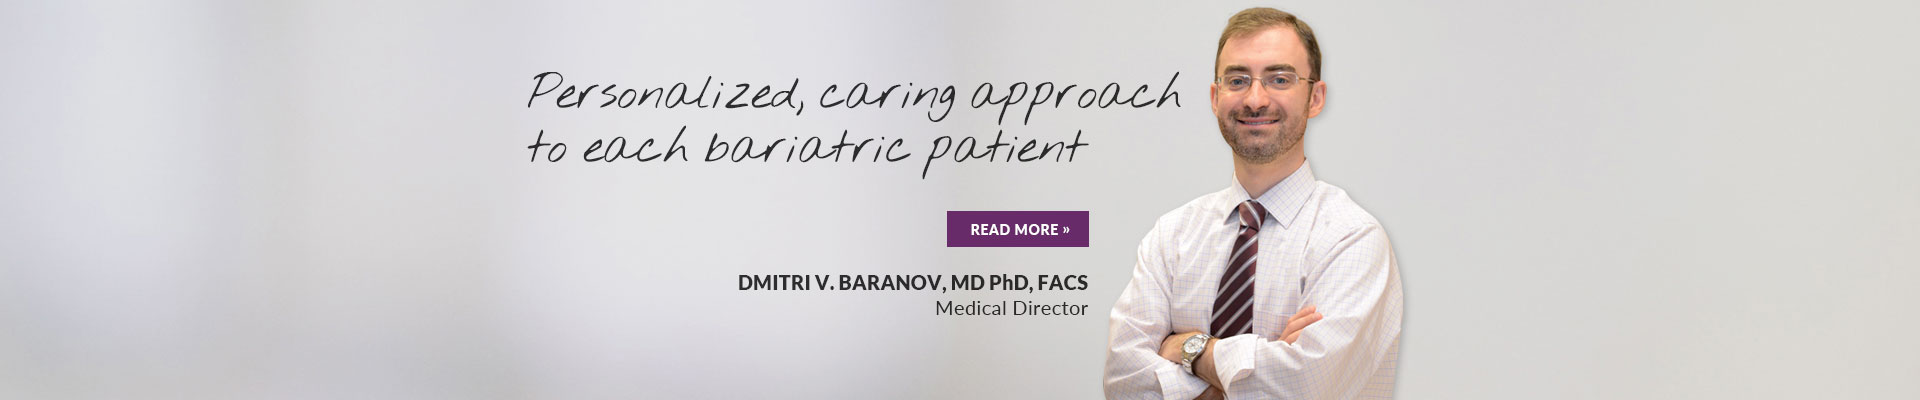 Saratoga Bariatric Center